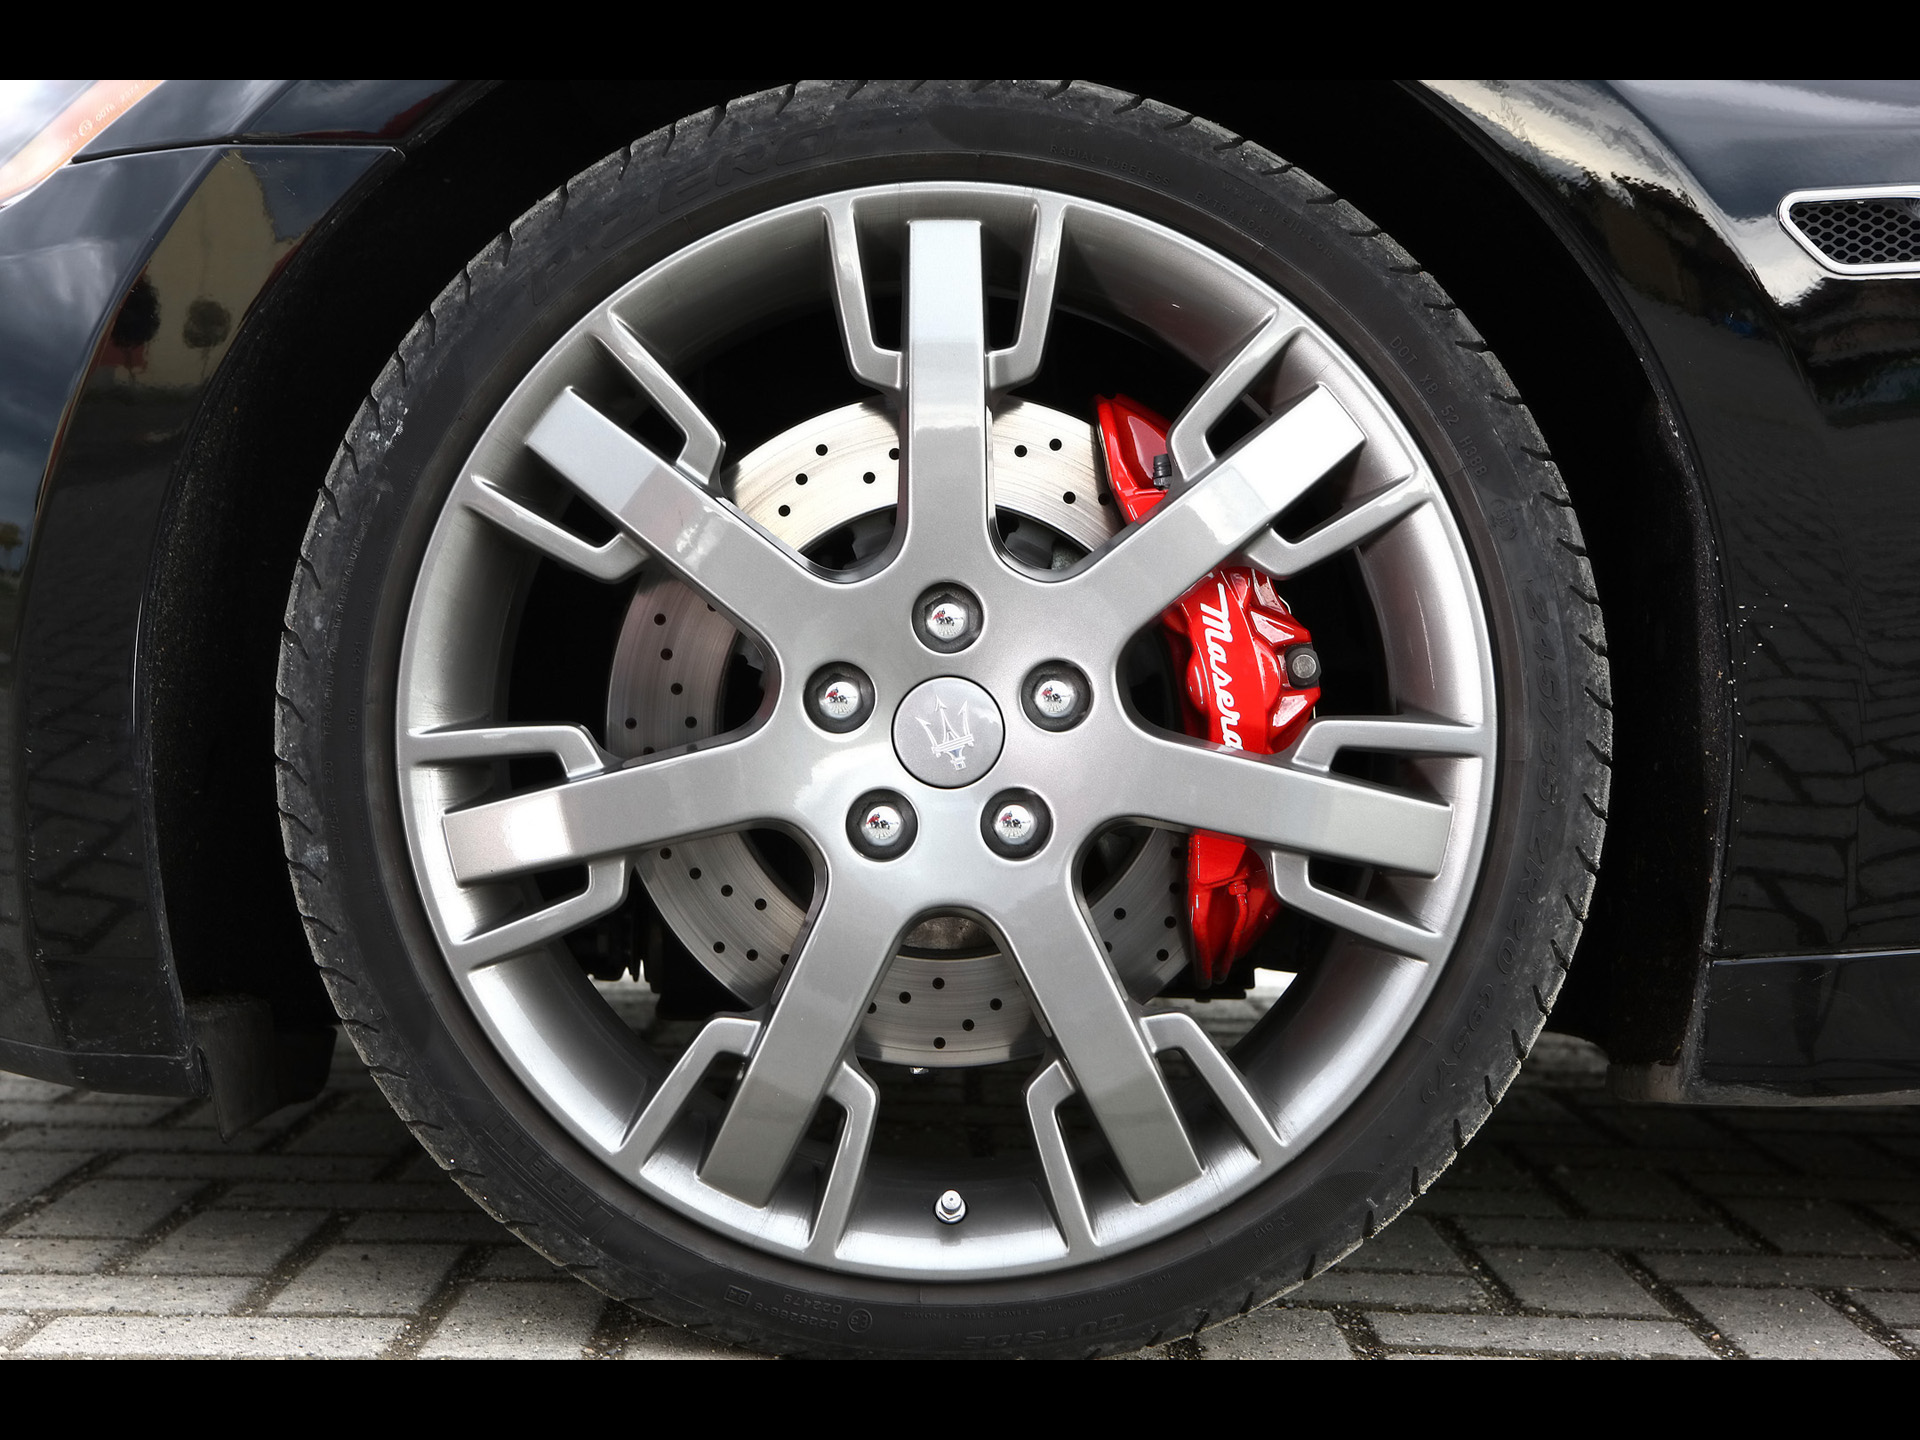 Maserati Gt Wheel Wallpapers X